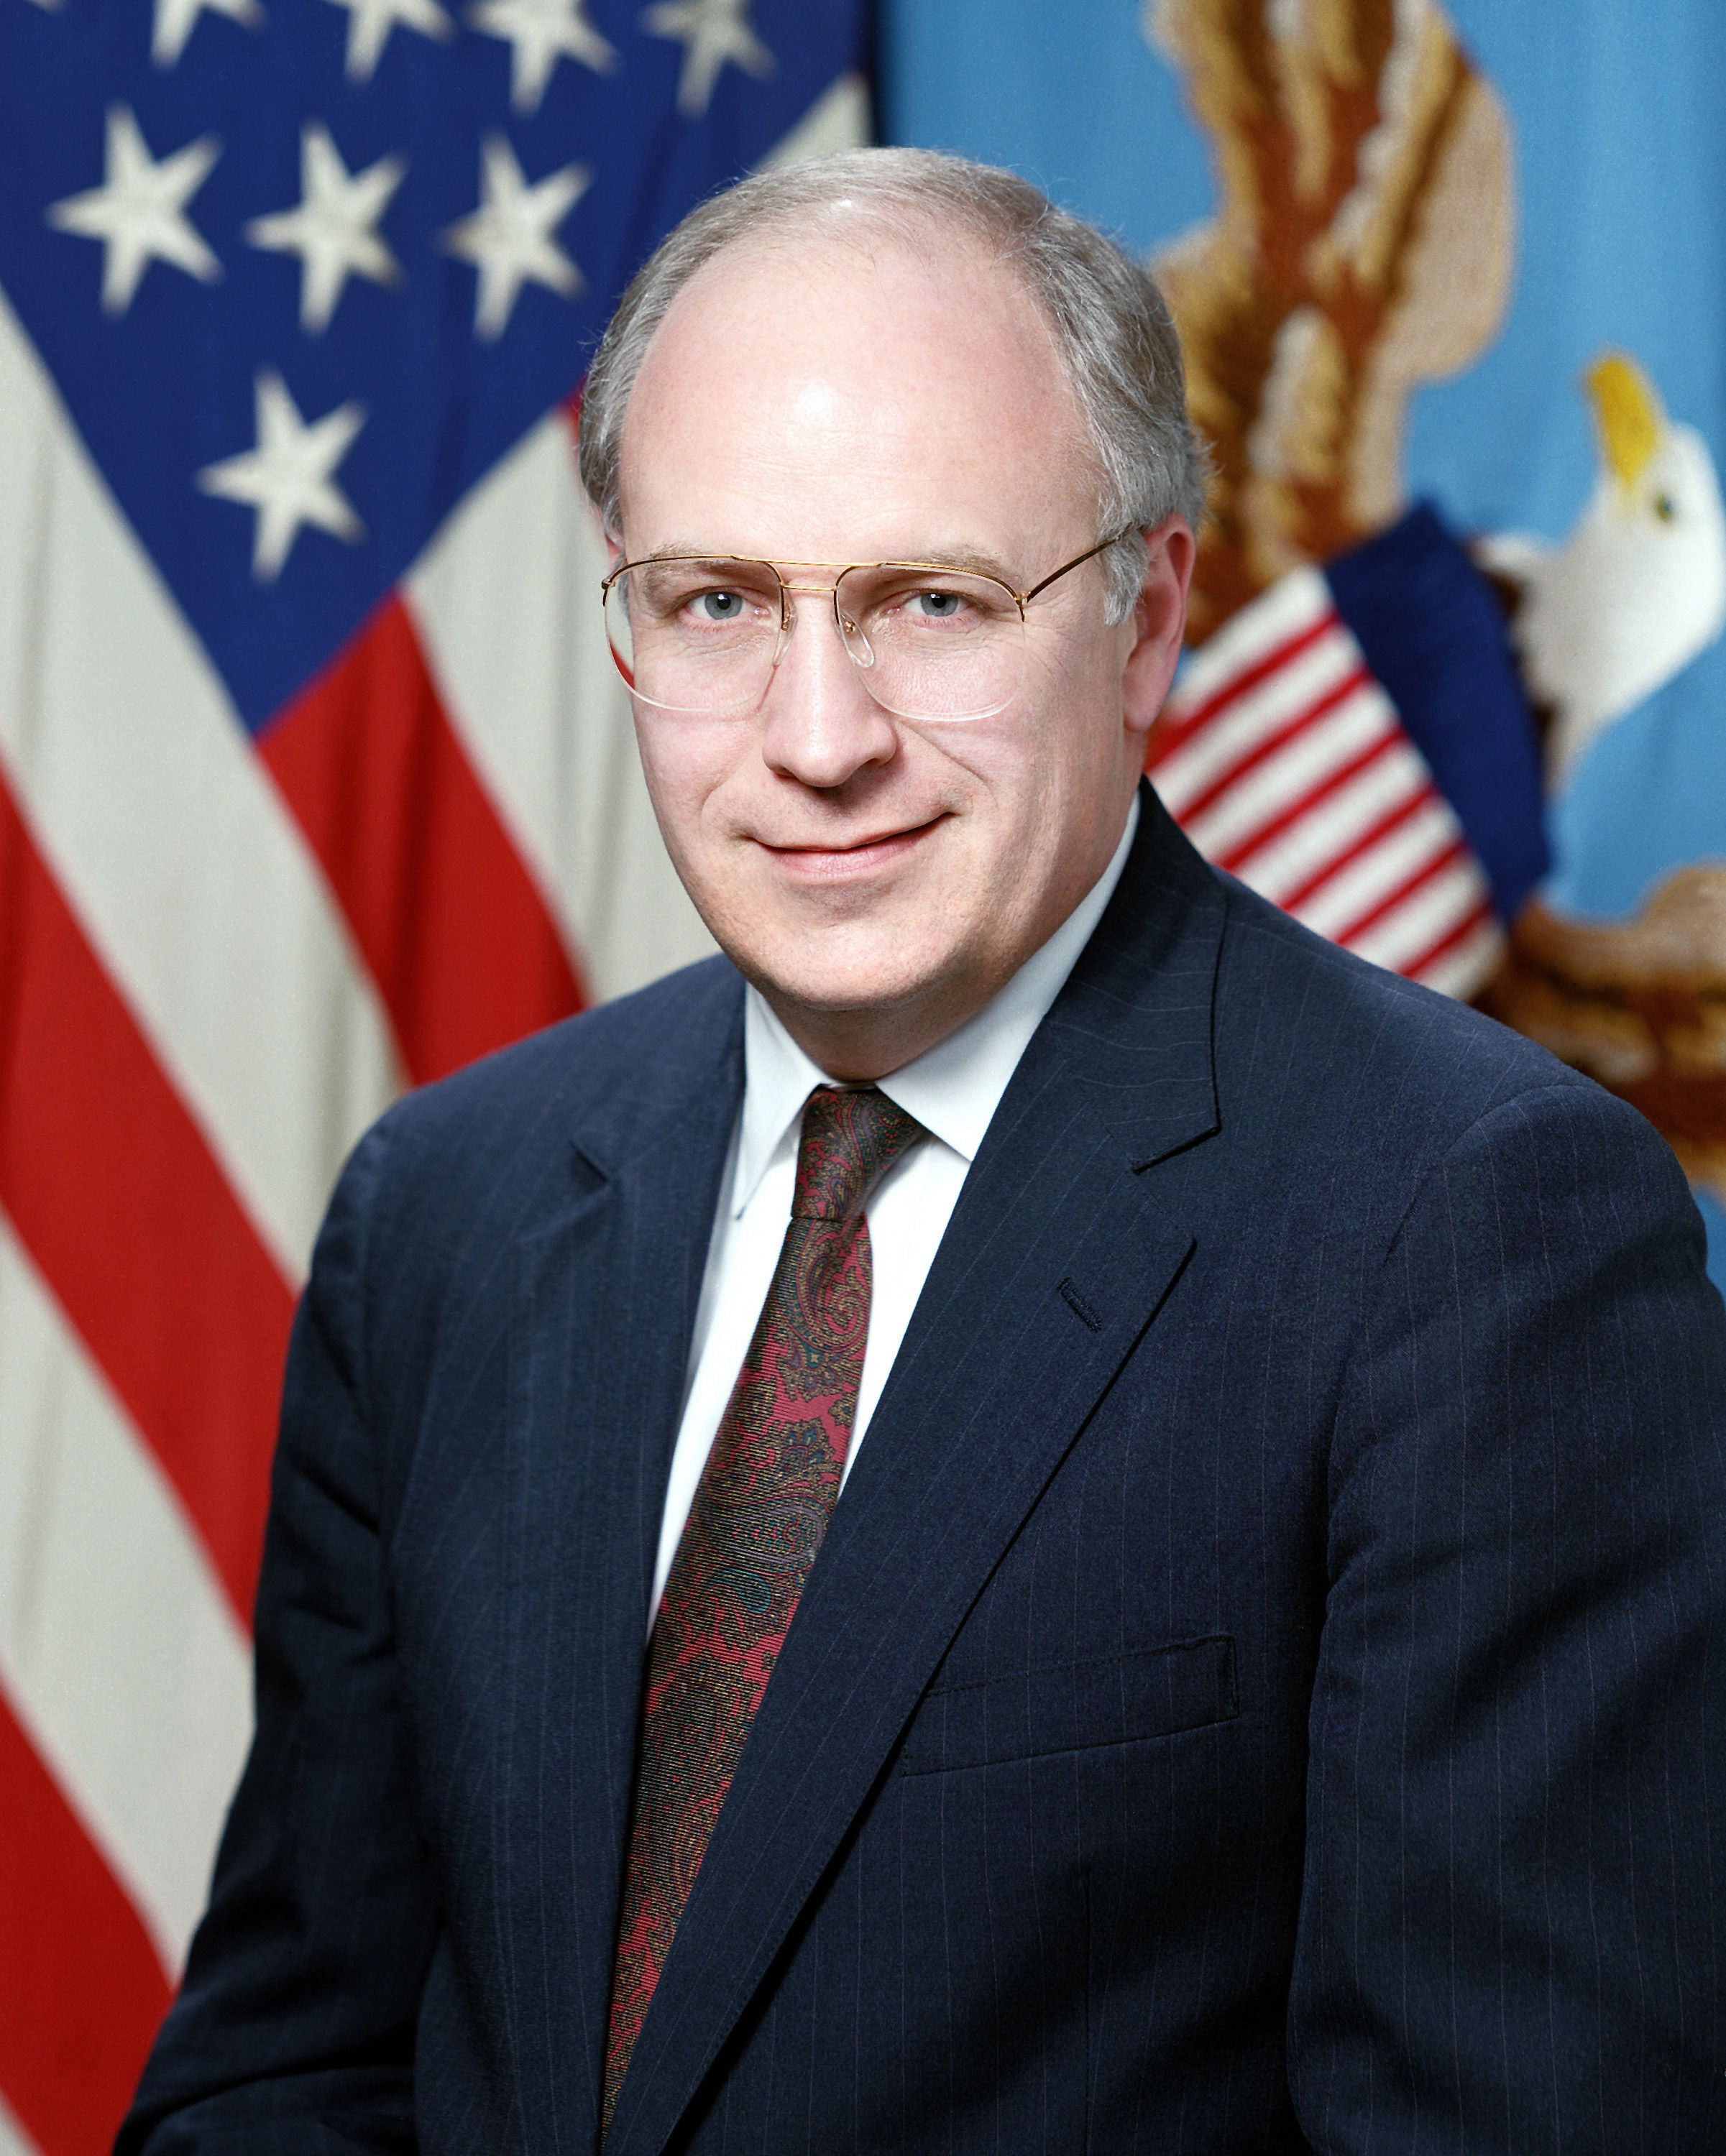 Dick Cheney Wikipedia The Free Encyclopedia 46th Vice